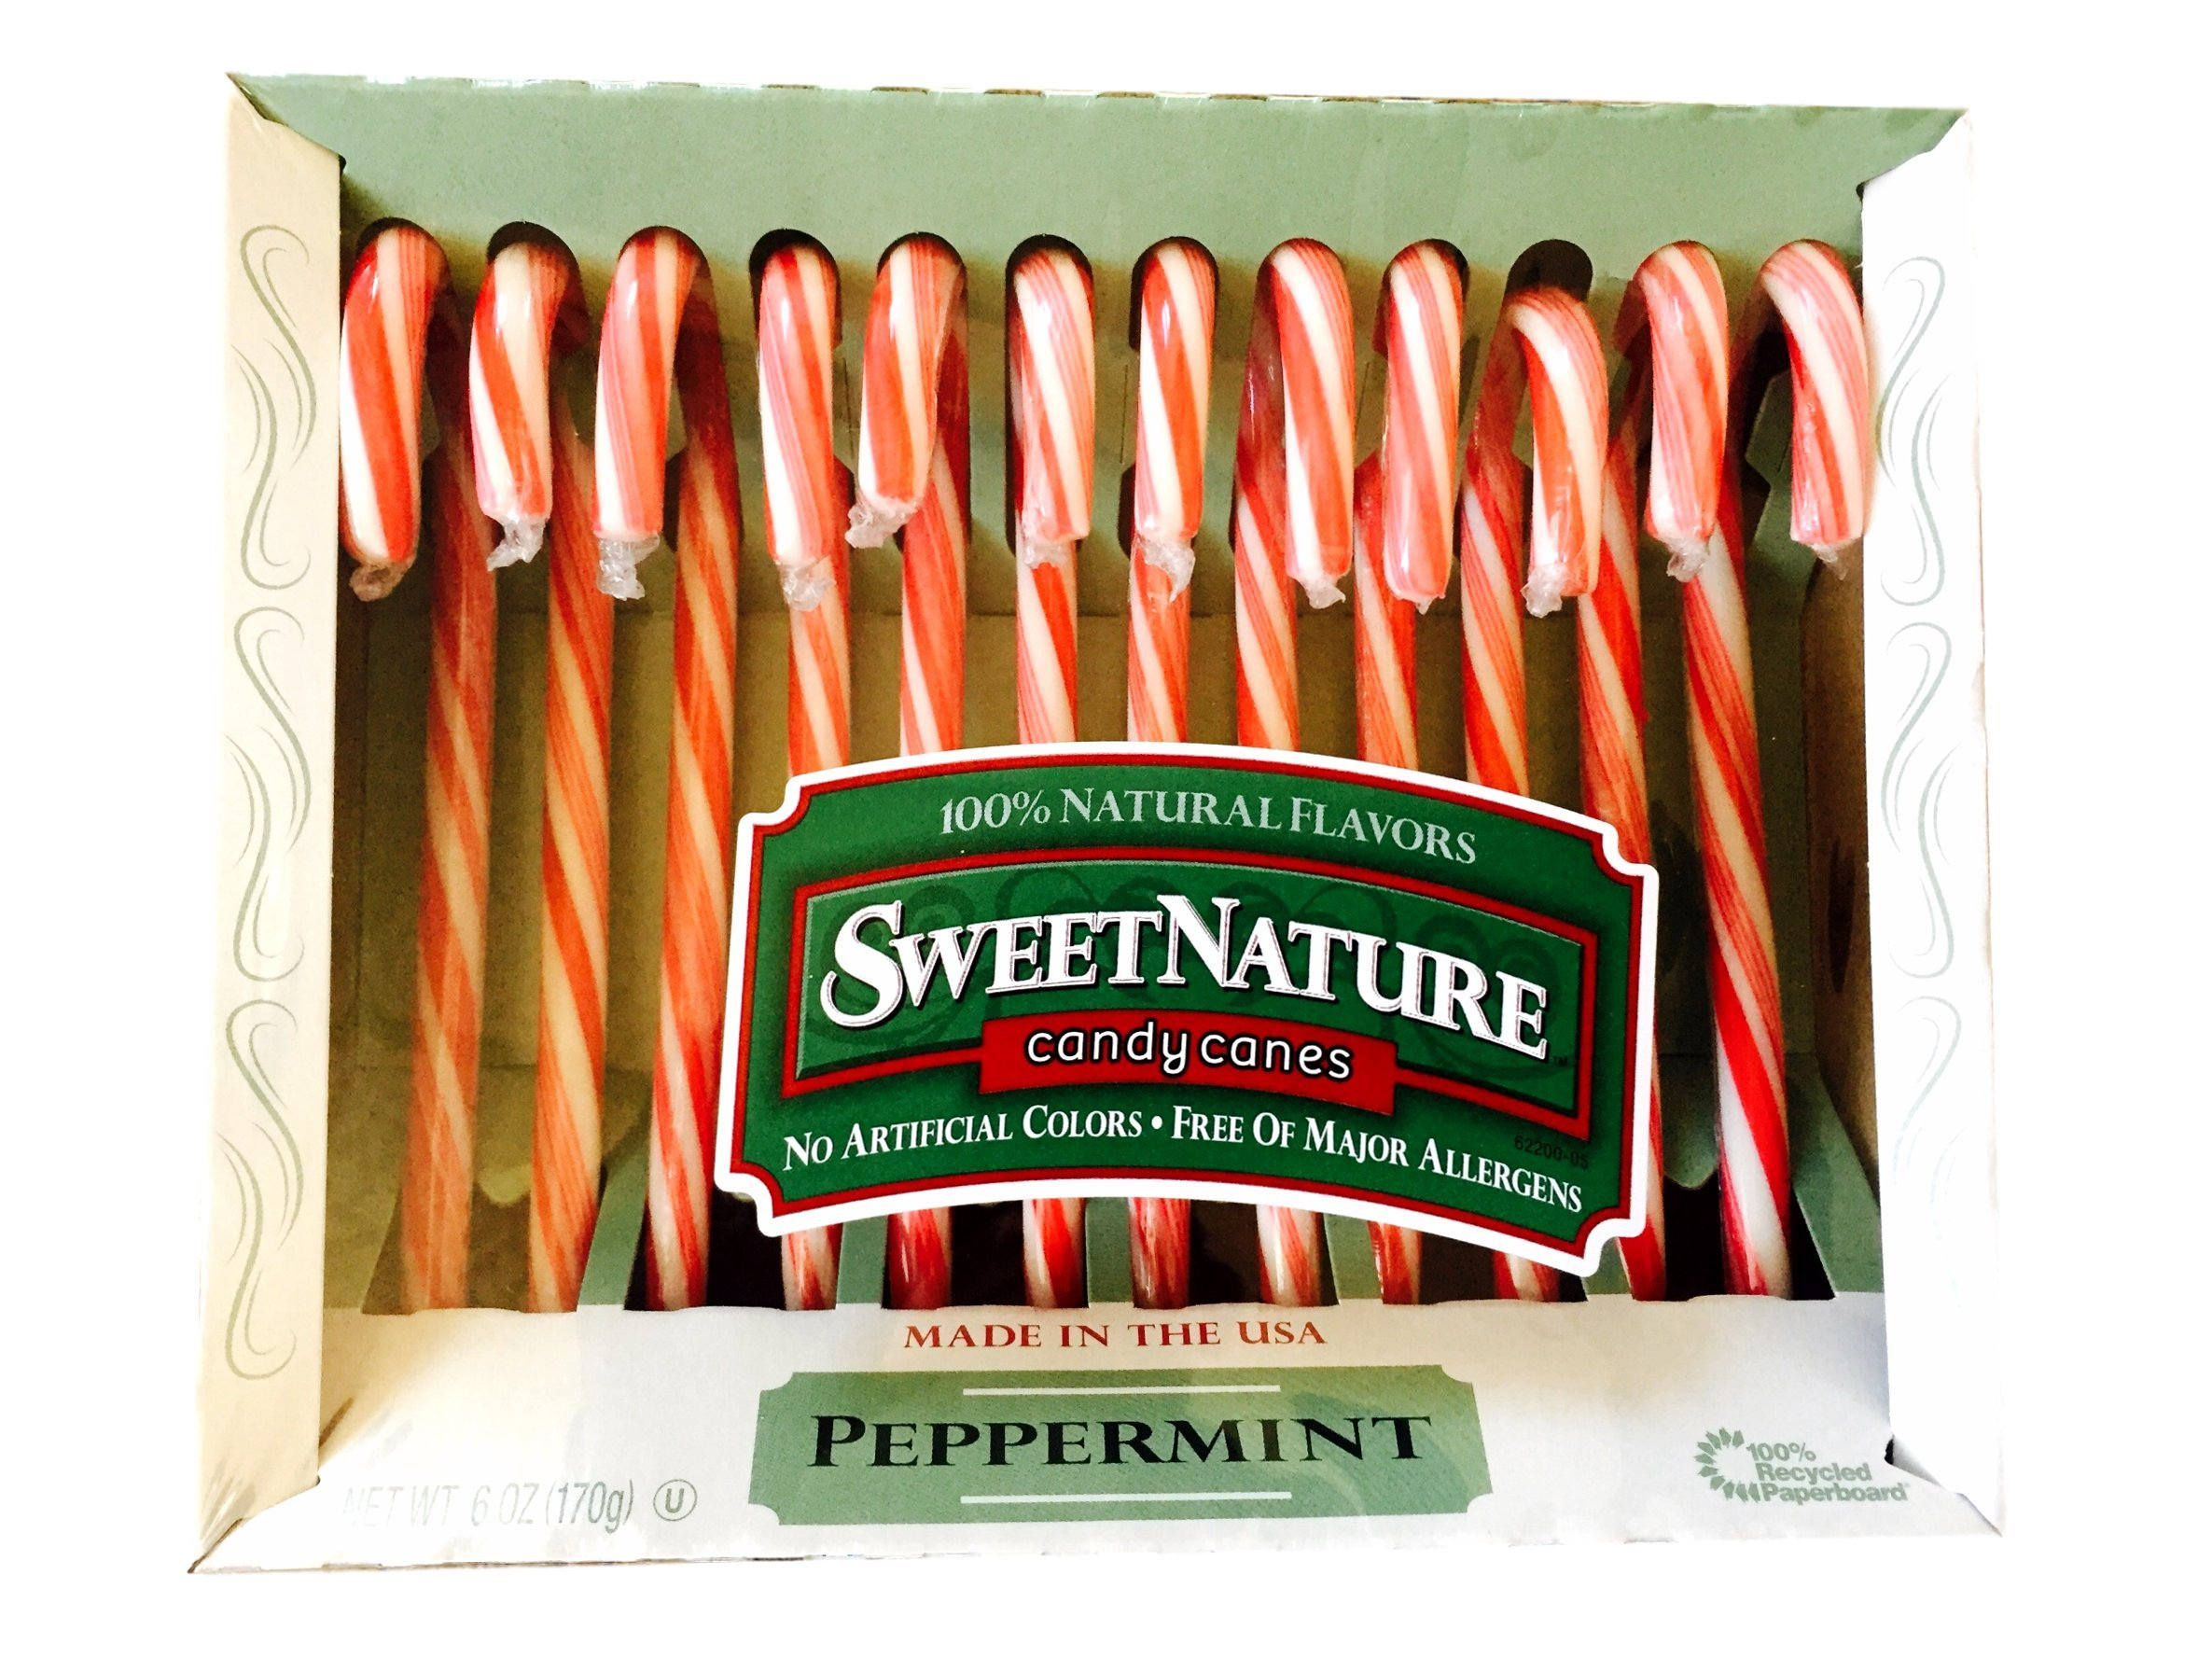 Sweet Nature Candy Canes by Spangler Candy Canes